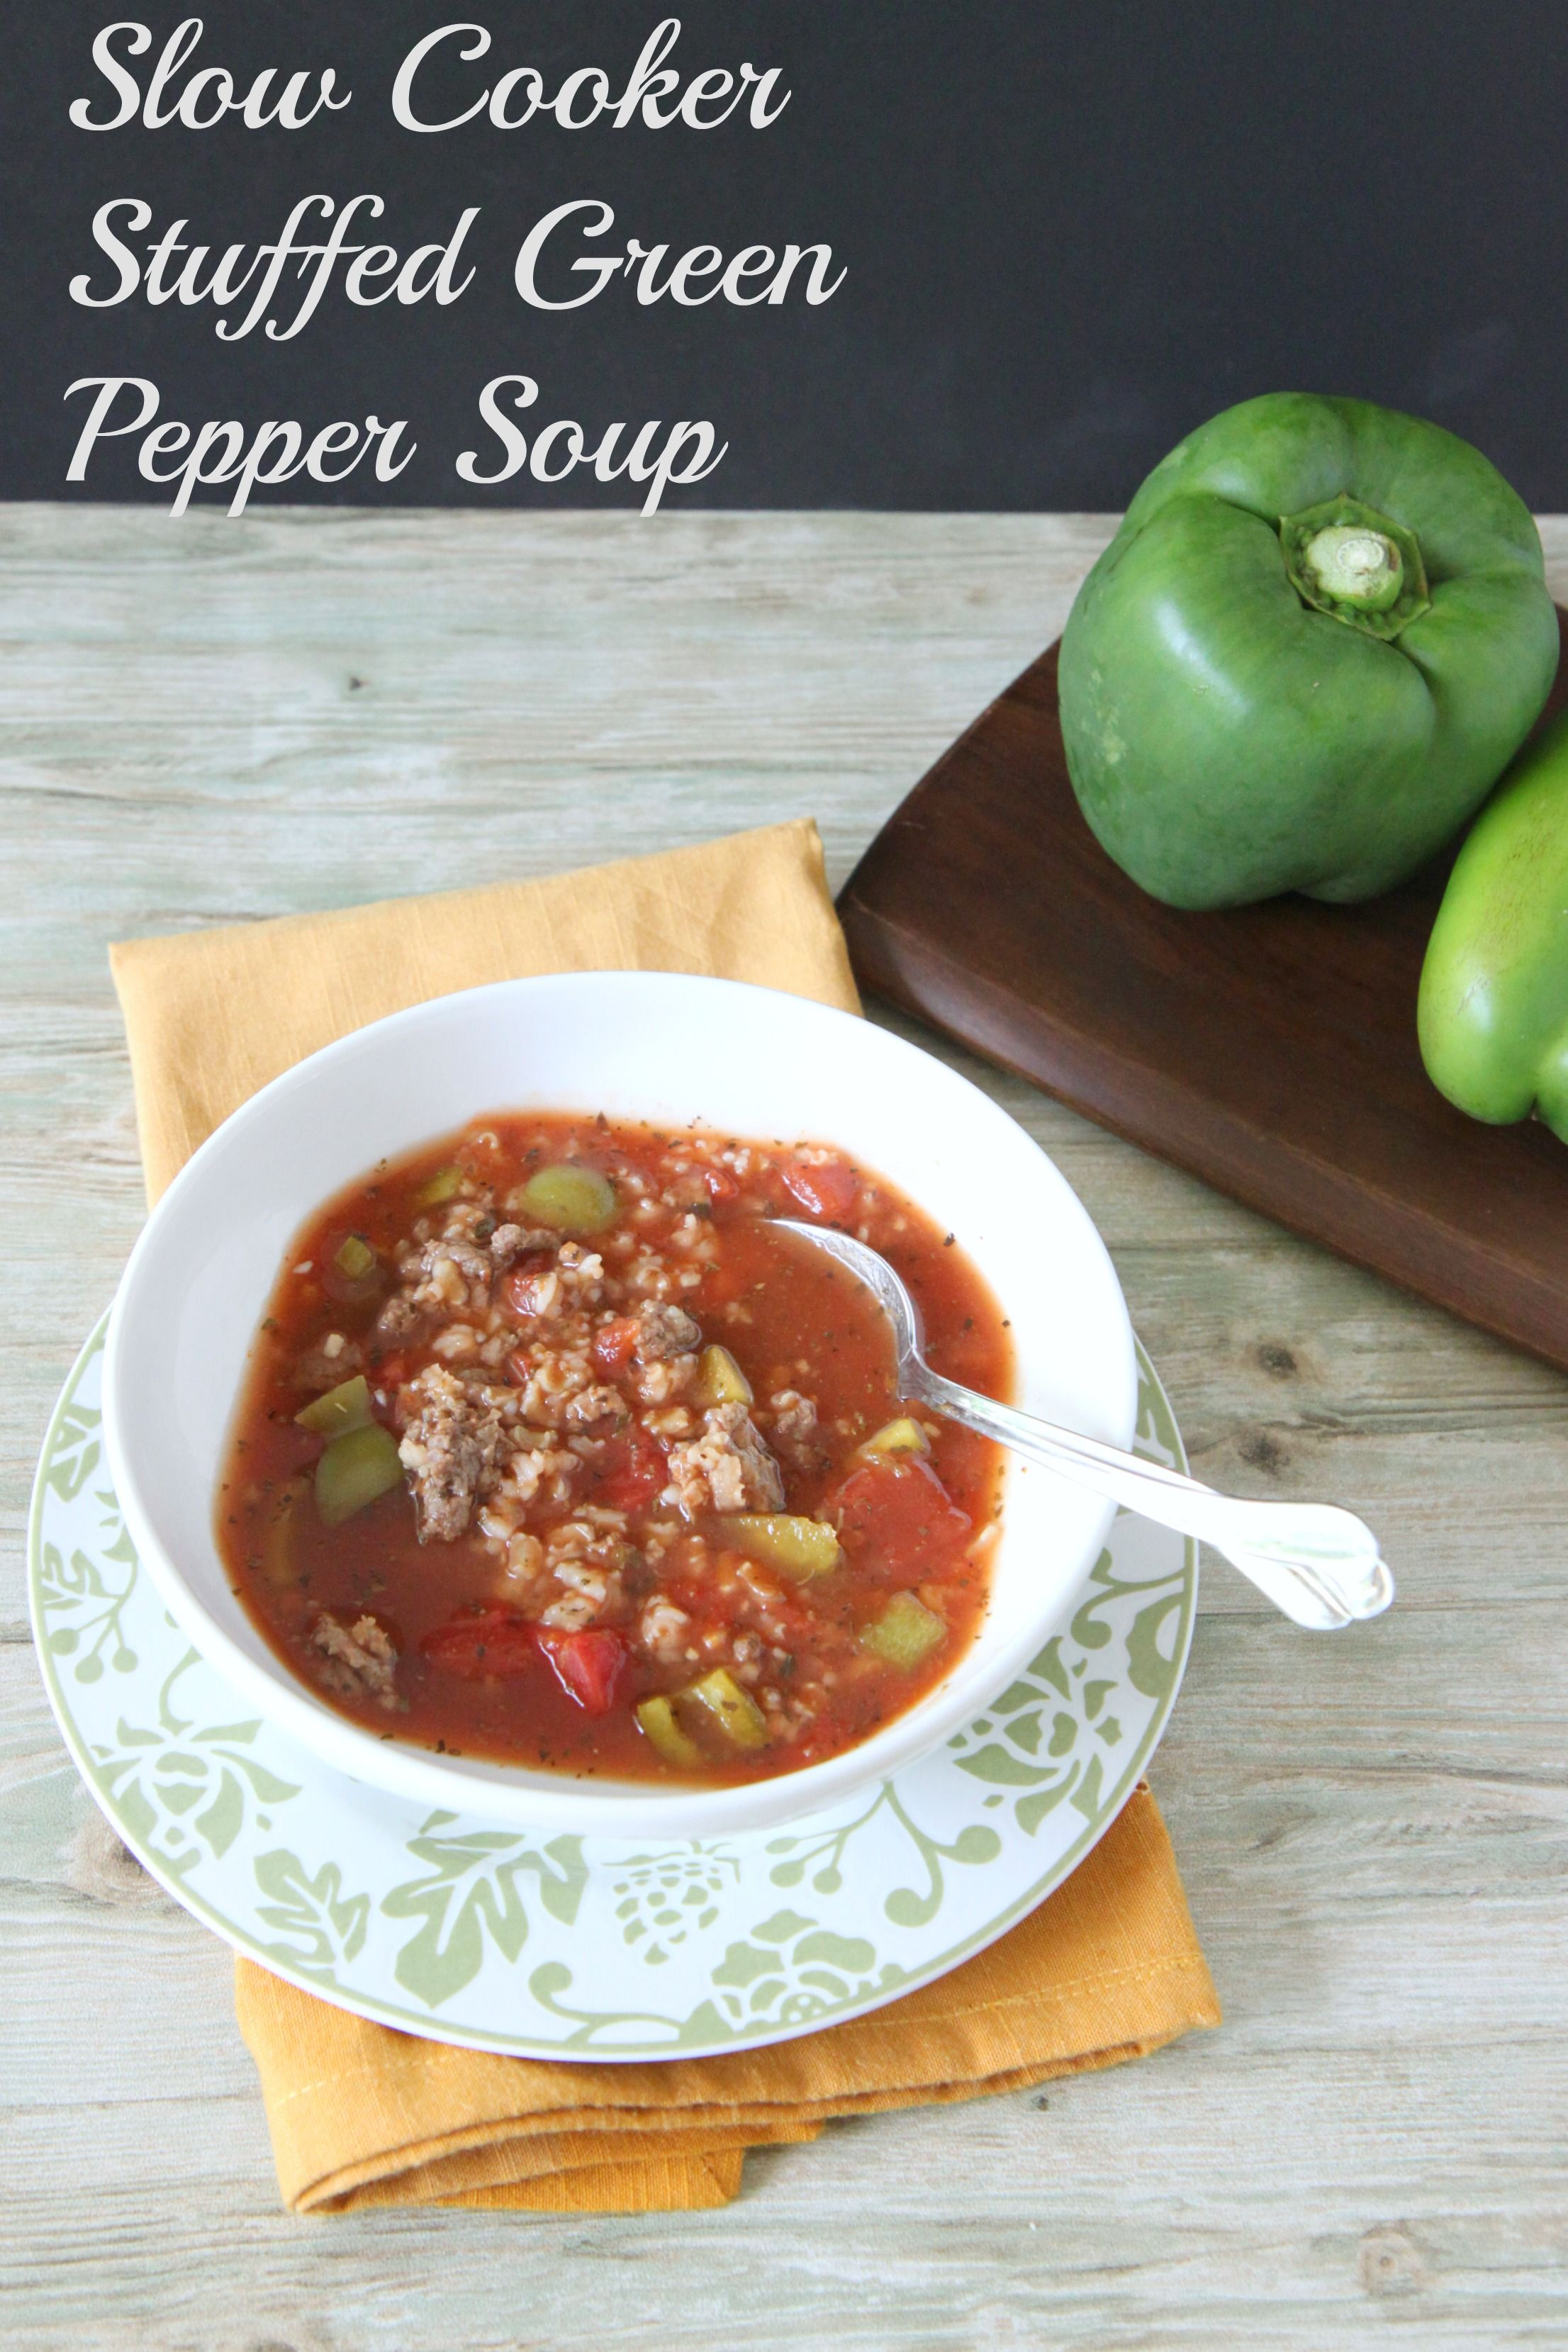 Slow Cooker Stuffed Green Pepper Soup With Images Stuffed Pepper Soup Green Pepper Soup